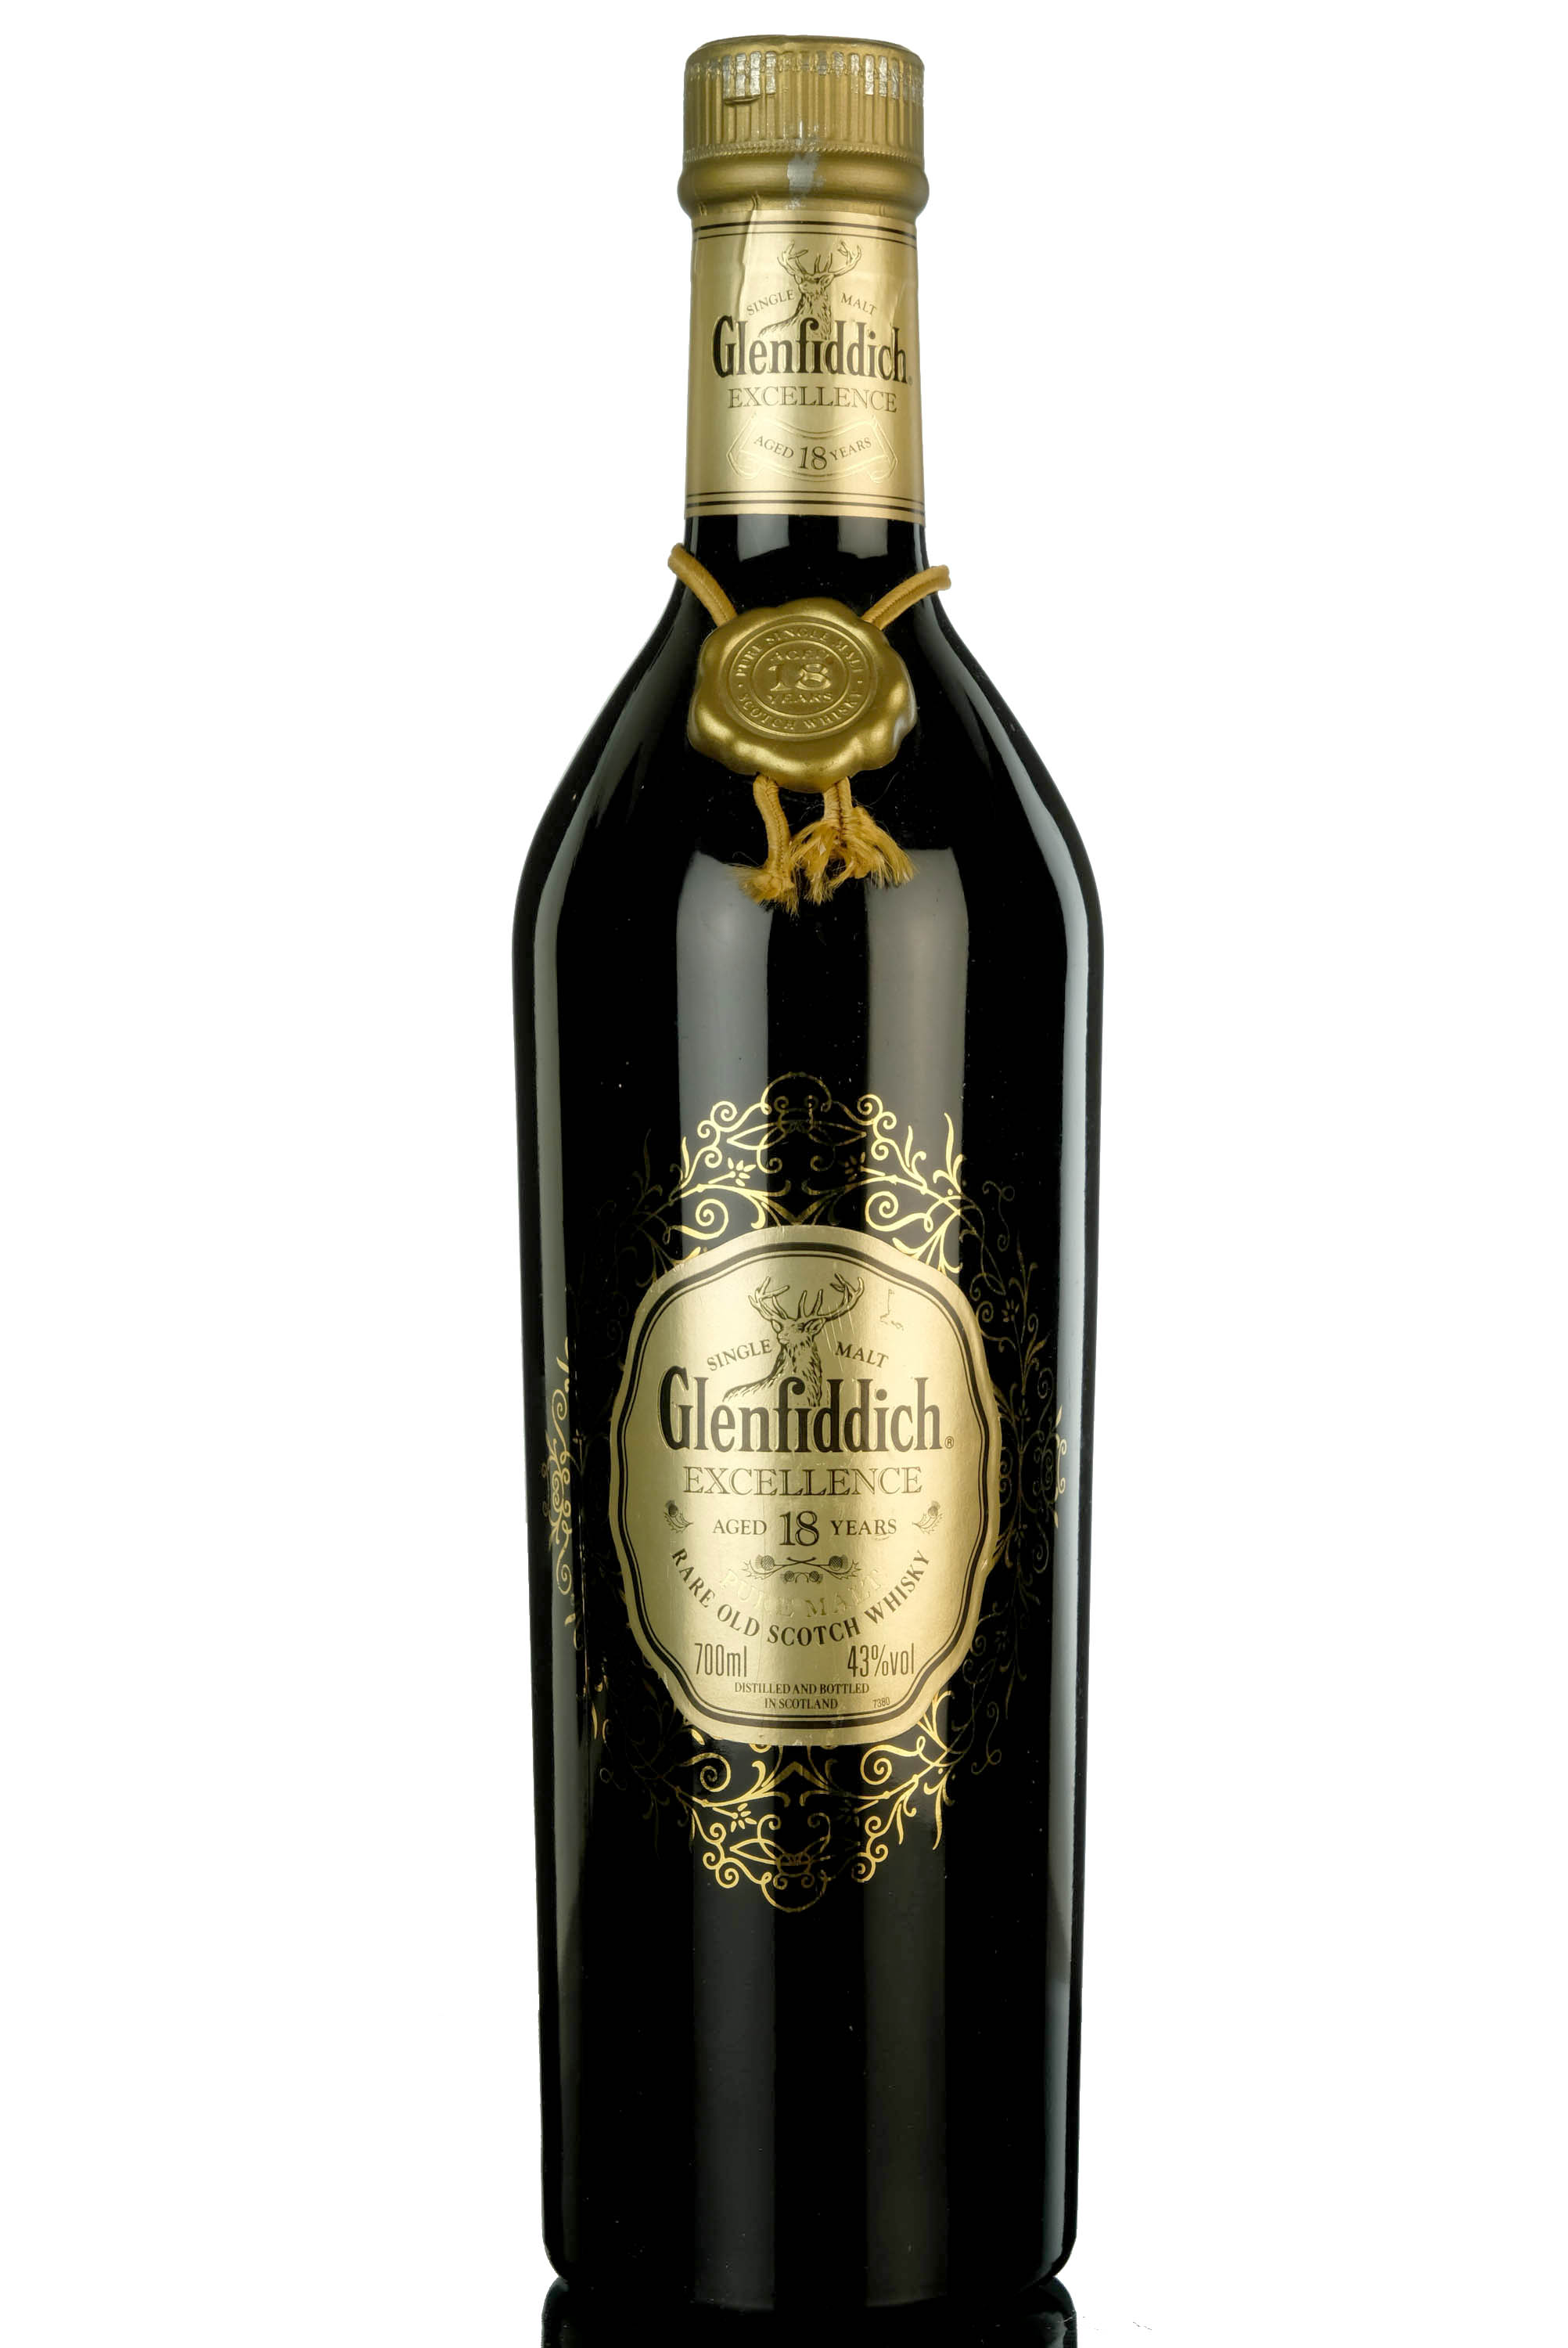 glenfiddich 18 year old - excellence